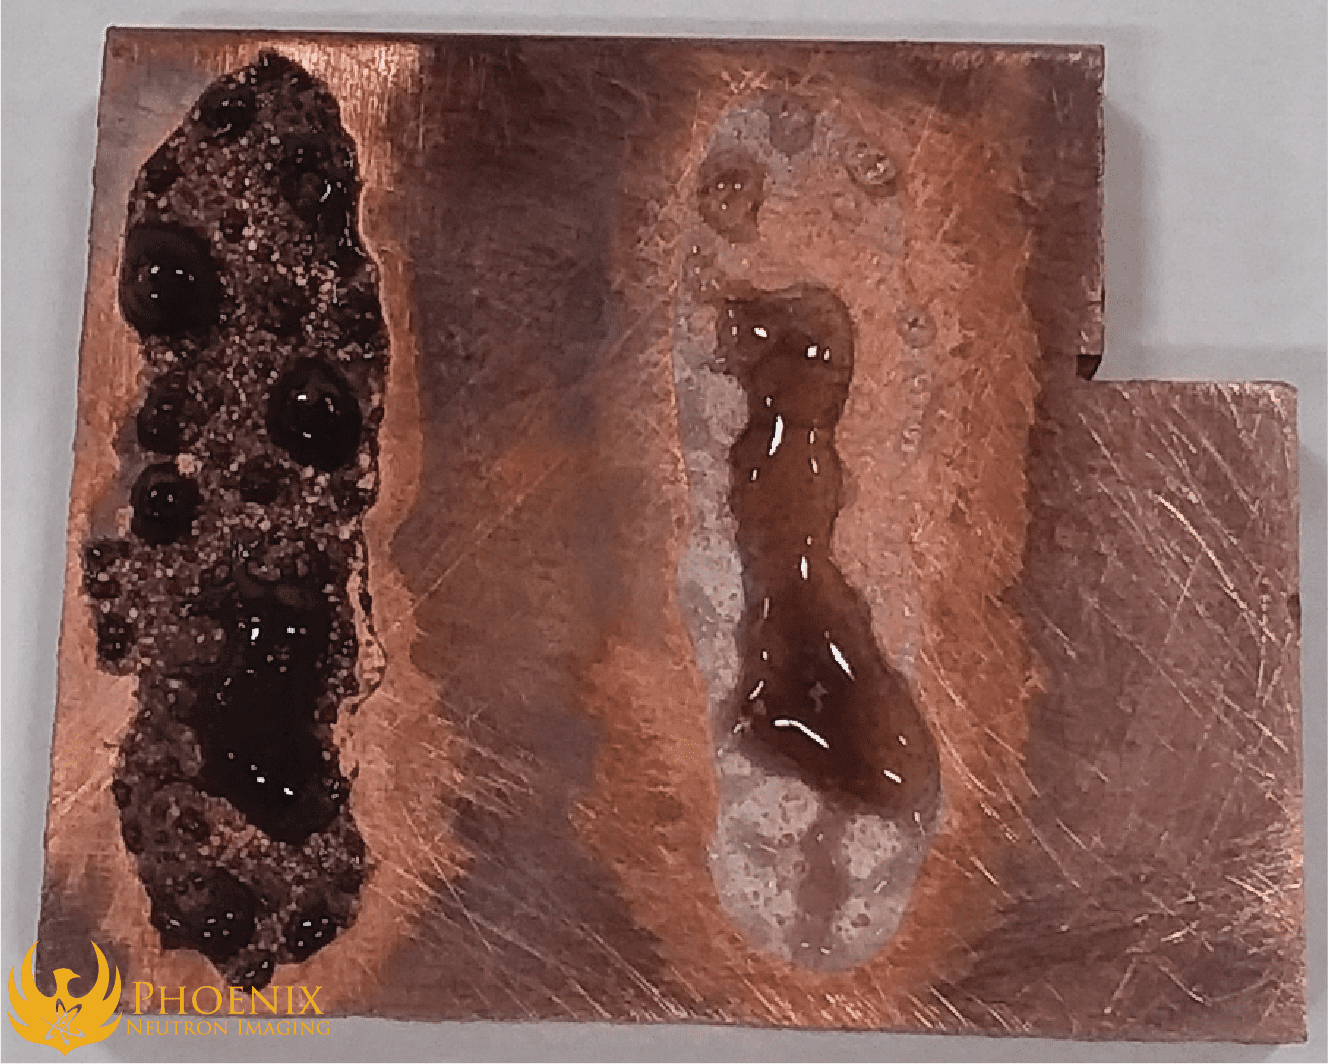 Boron fluxes placed on copper plate